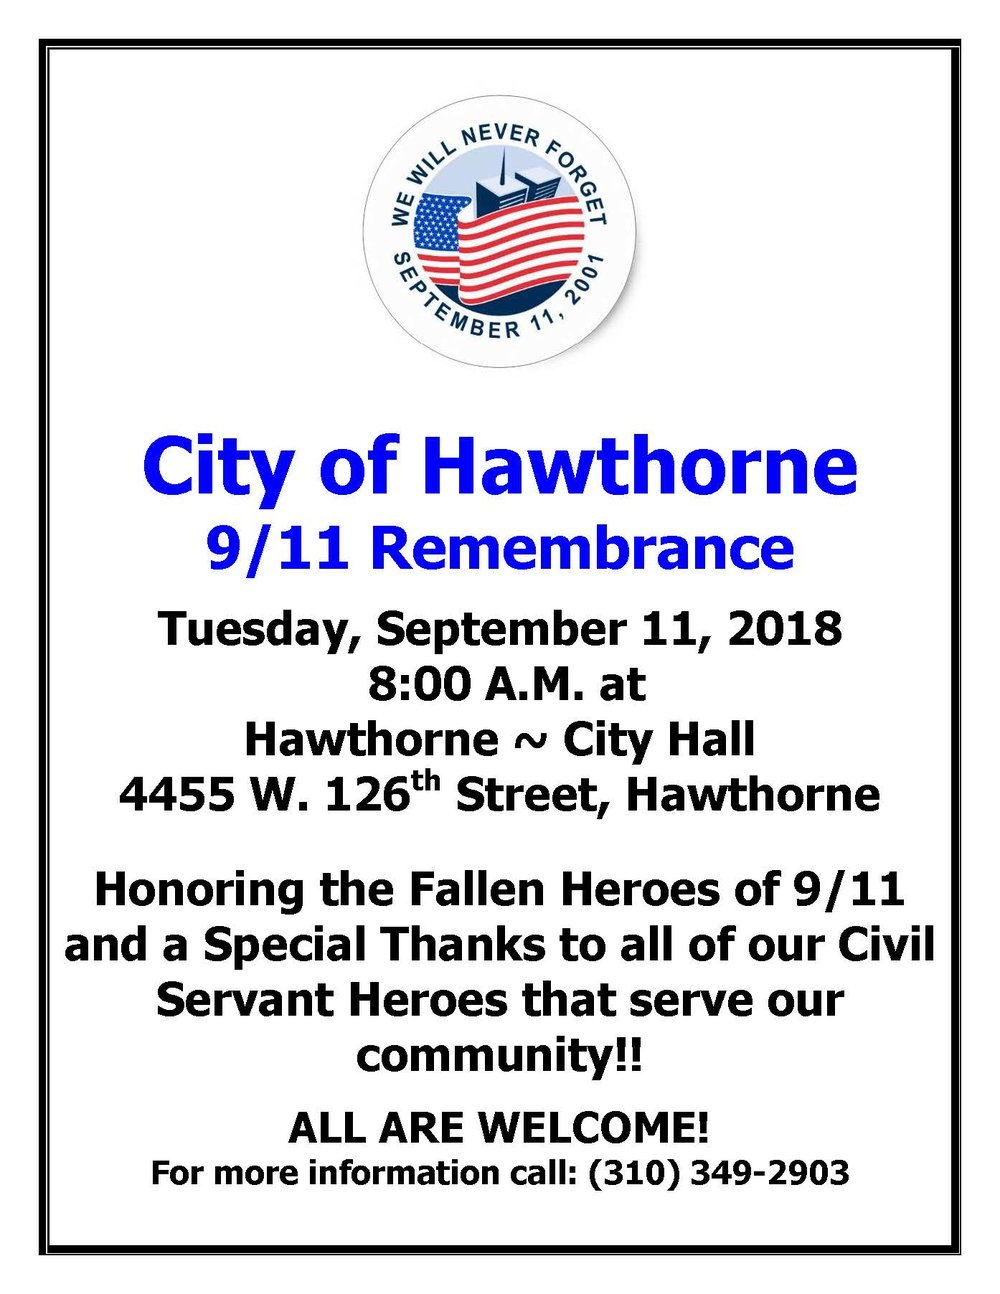 City of Hawthorne 9/11 Remembrance